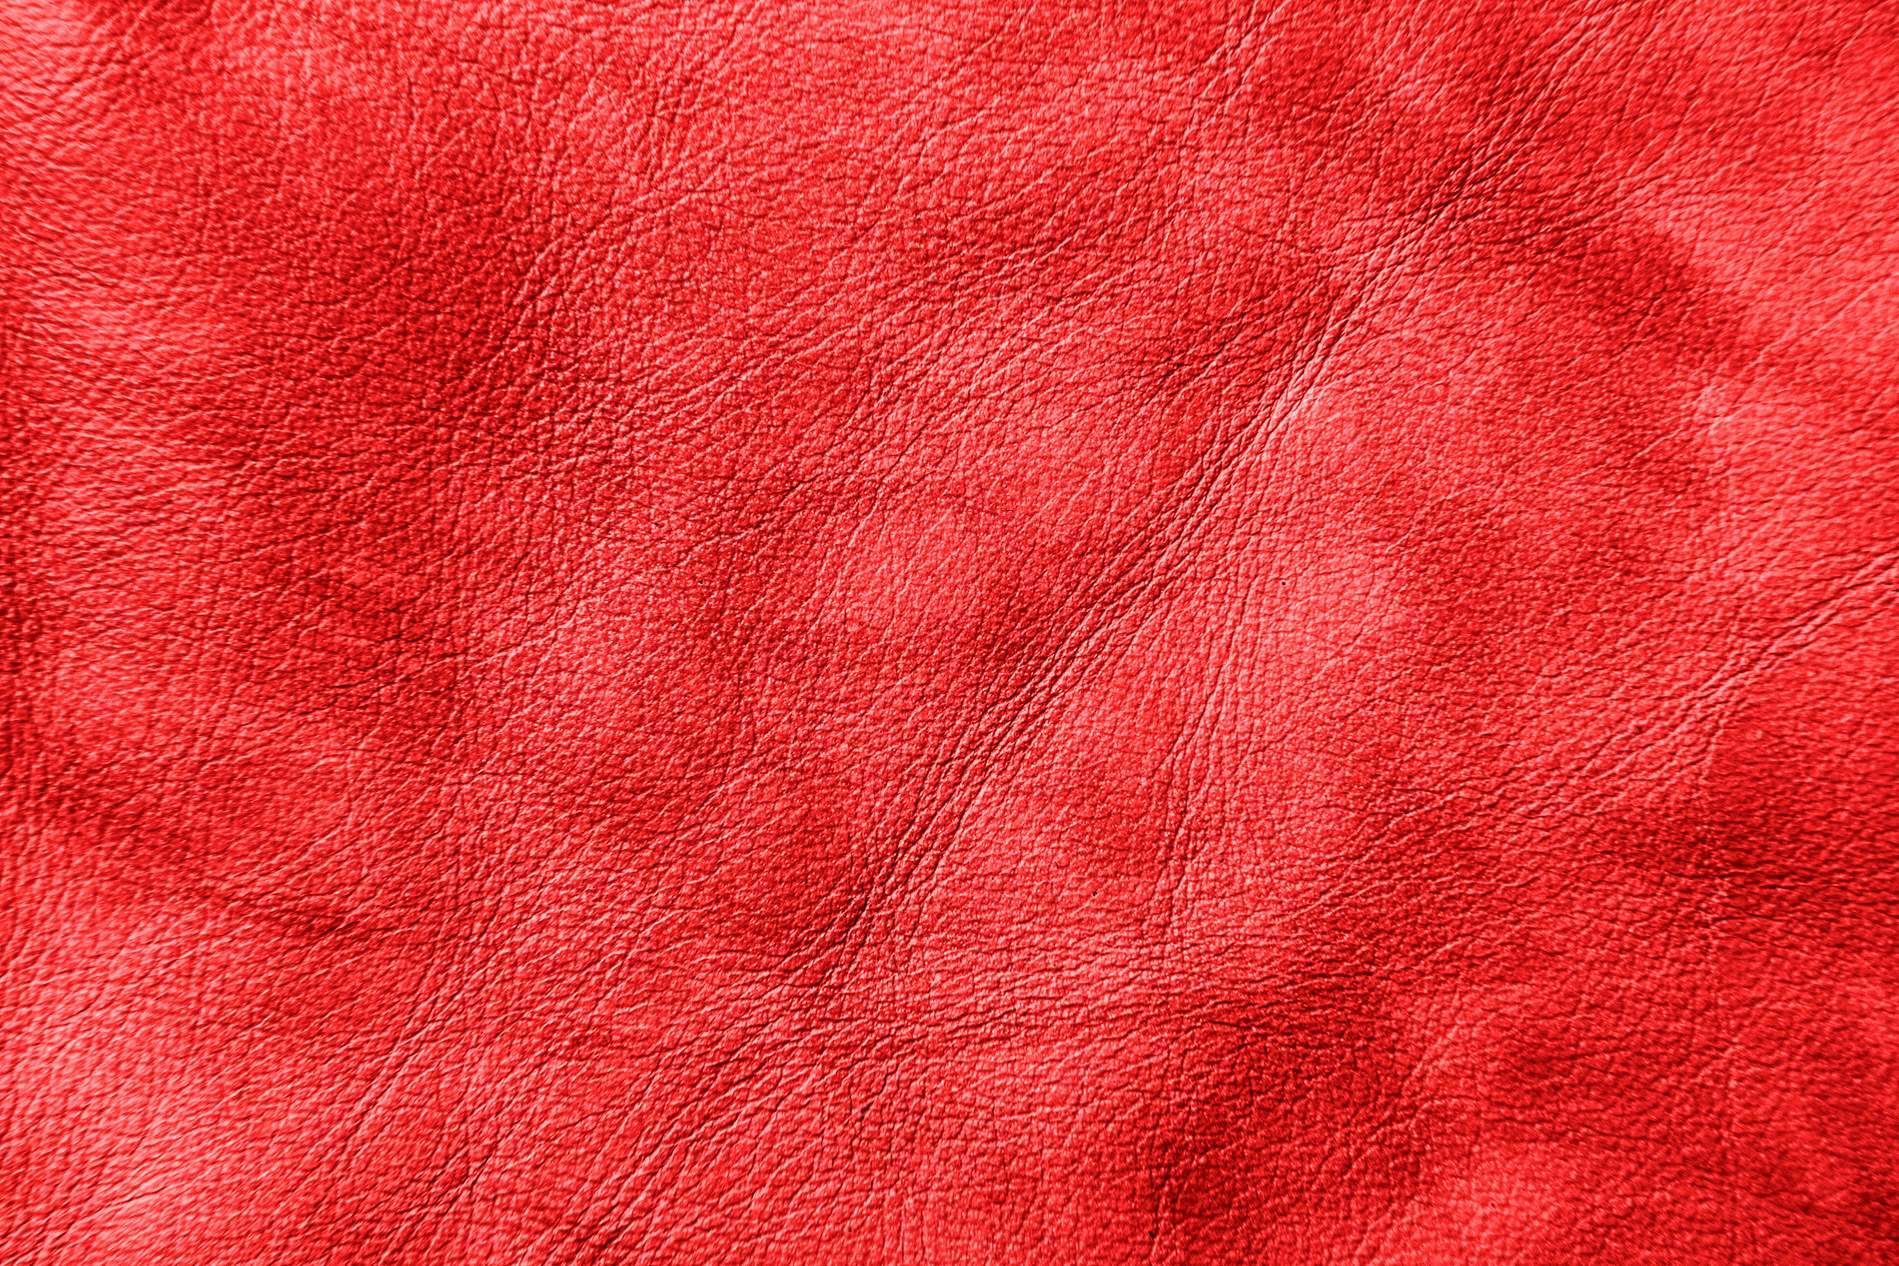 red textured backgrounds - photo #31